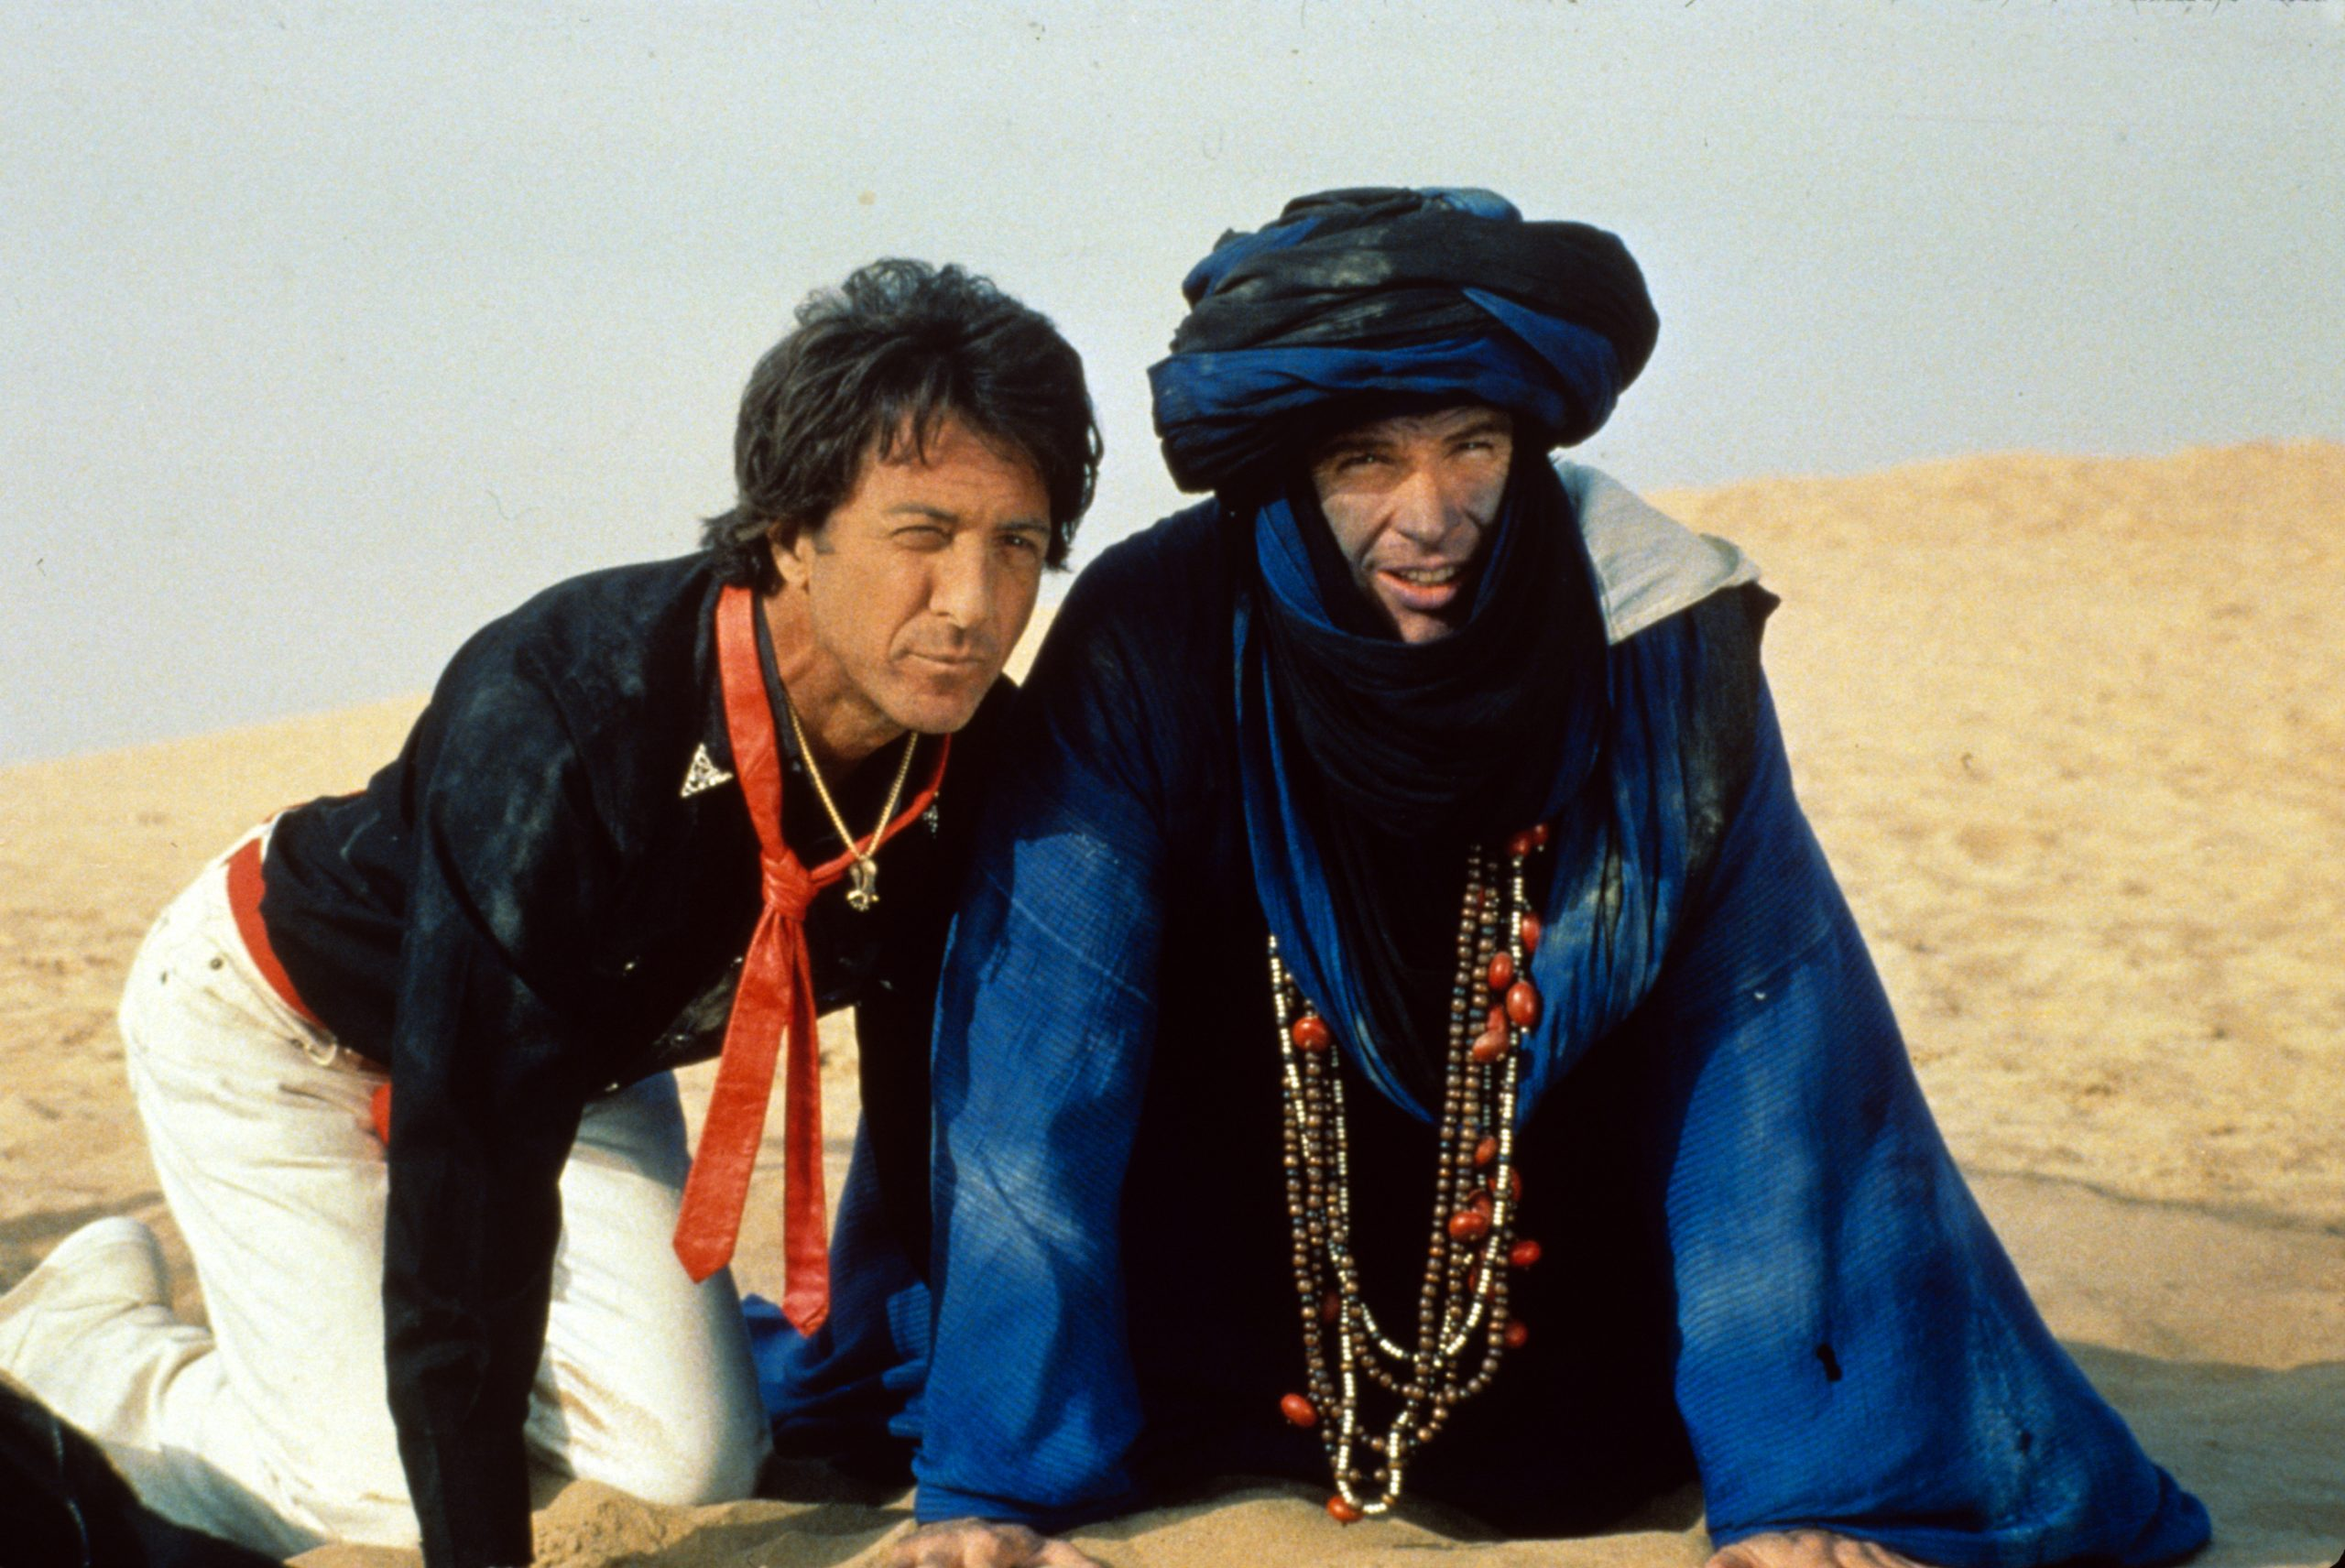 Ishtar scaled Dangerous Movie Production Moments That Could Never Happen Today